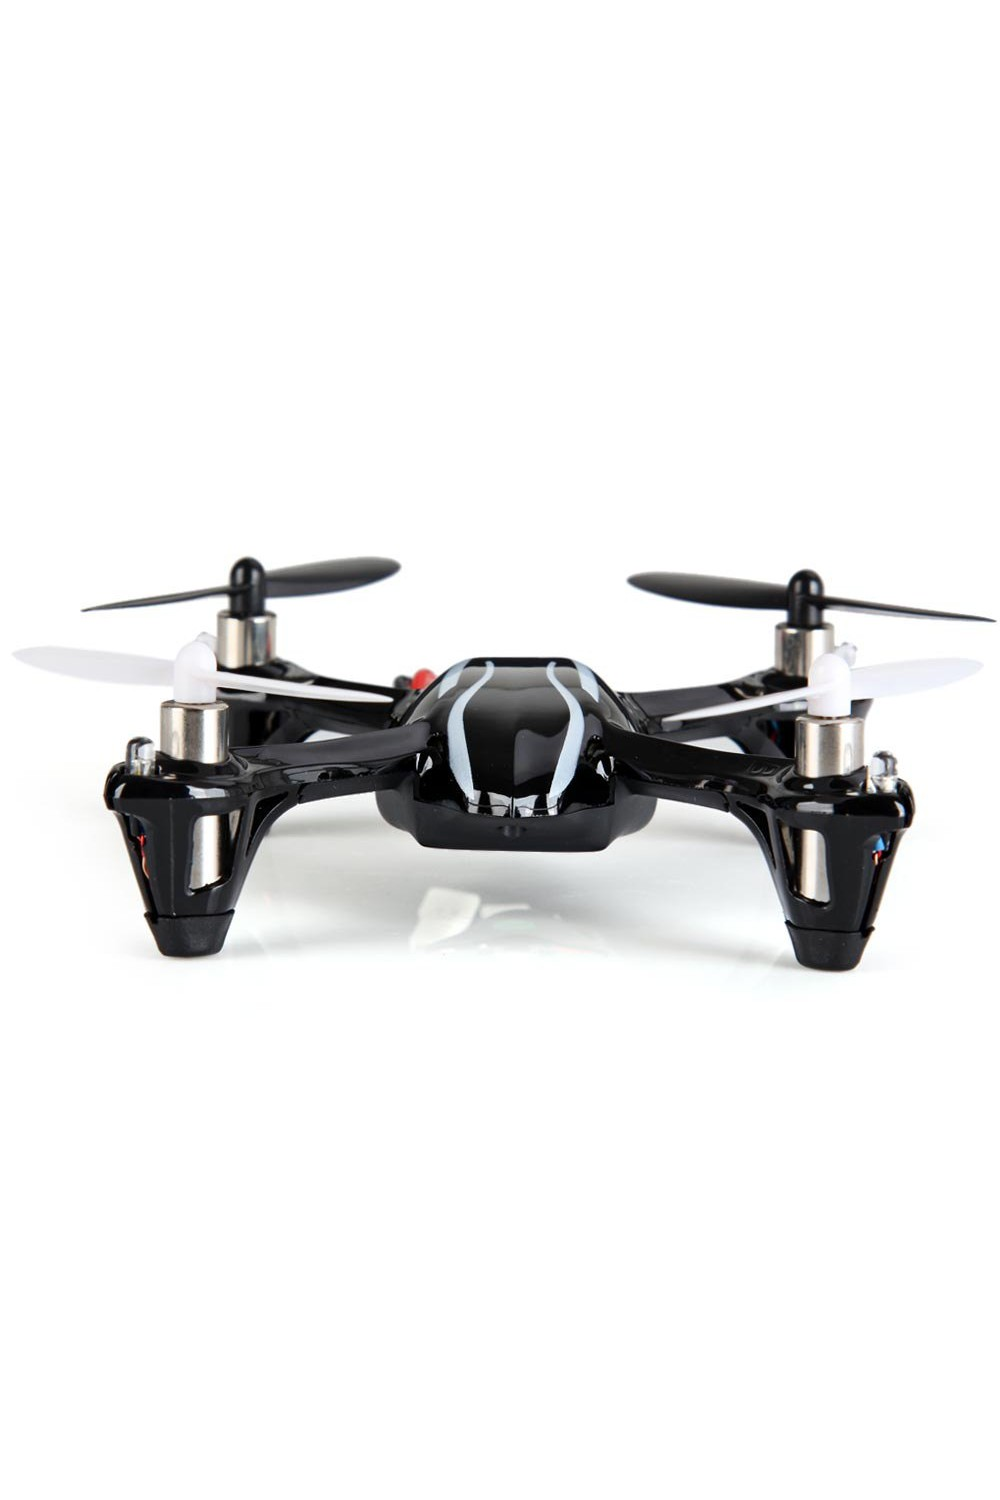 Hubsan H107L RC Helicopter Brushed Motor 4CH 2.4GHz Wireless Remote Control Toys 6-Axis Gyro RC Quadcopter Drones